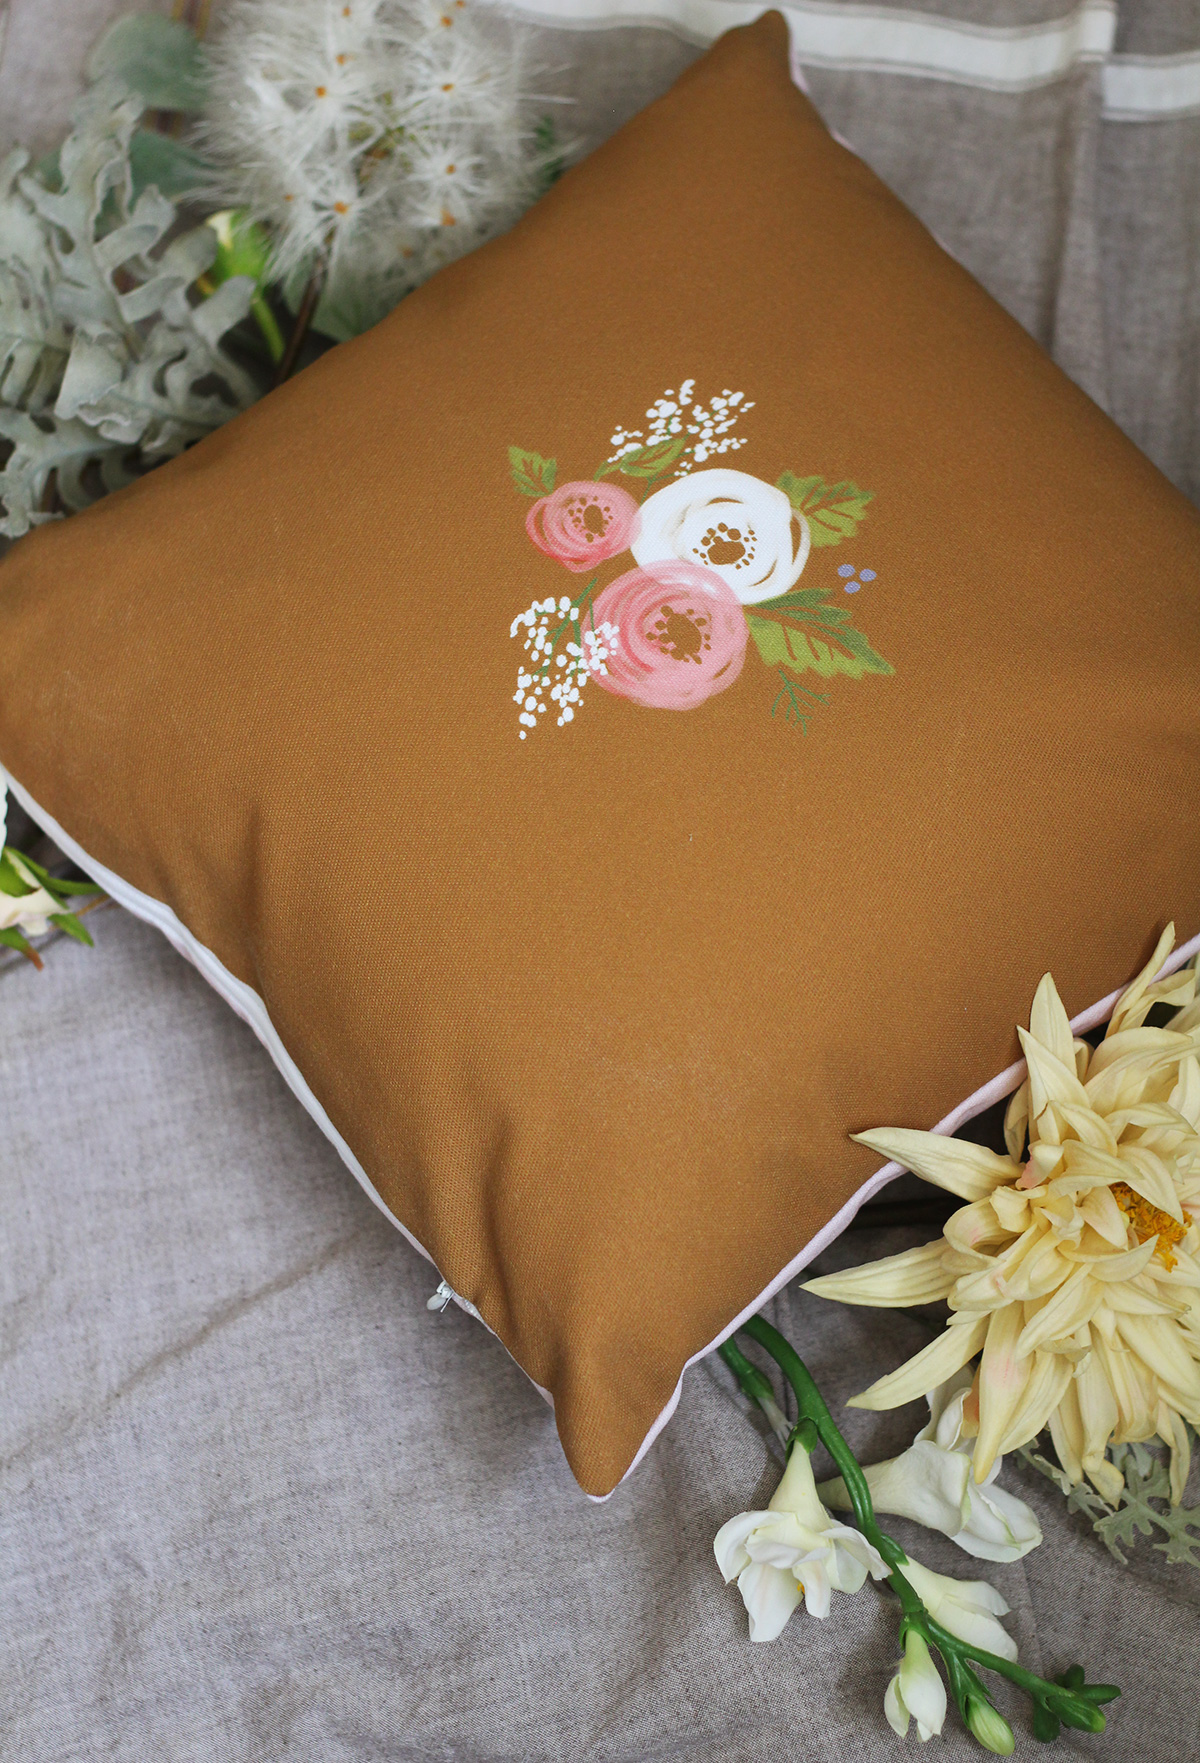 Limited Edition Handmade Pillows Are Here For Mother's Day